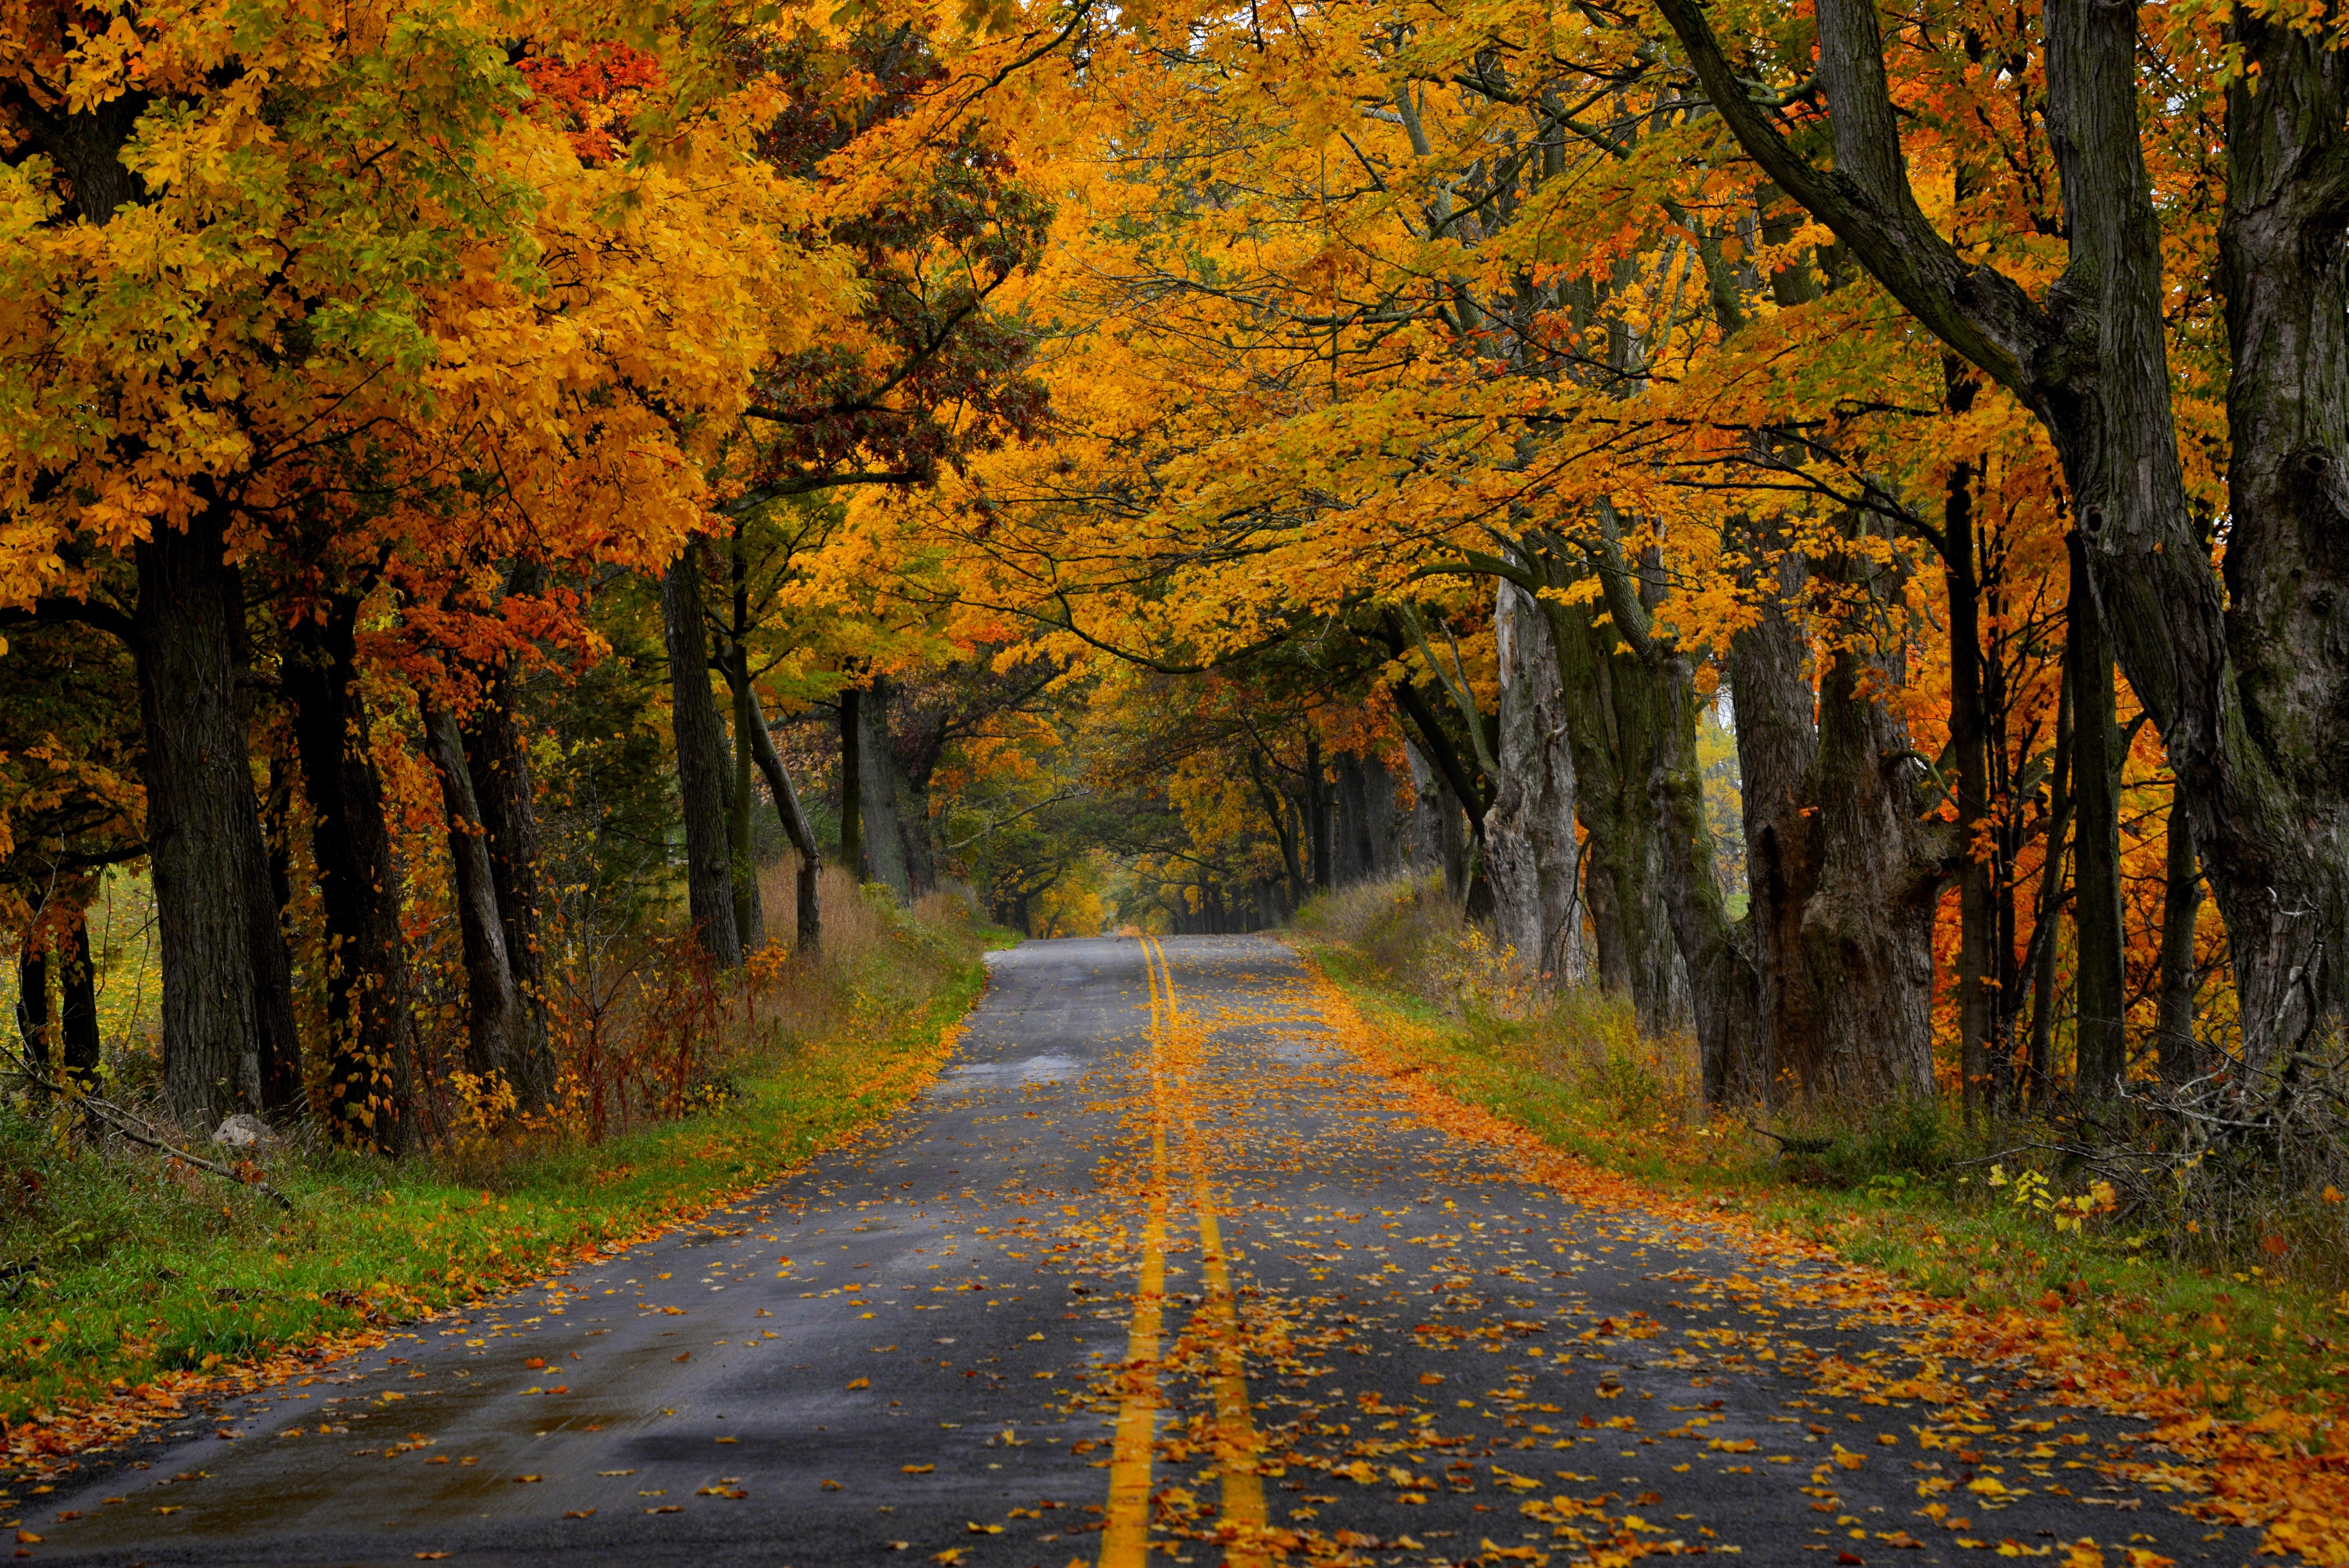 3d Snowy Cottage Animated Wallpaper Free Download Narrow Autumn Road Photos And Wallpapers Pinterest